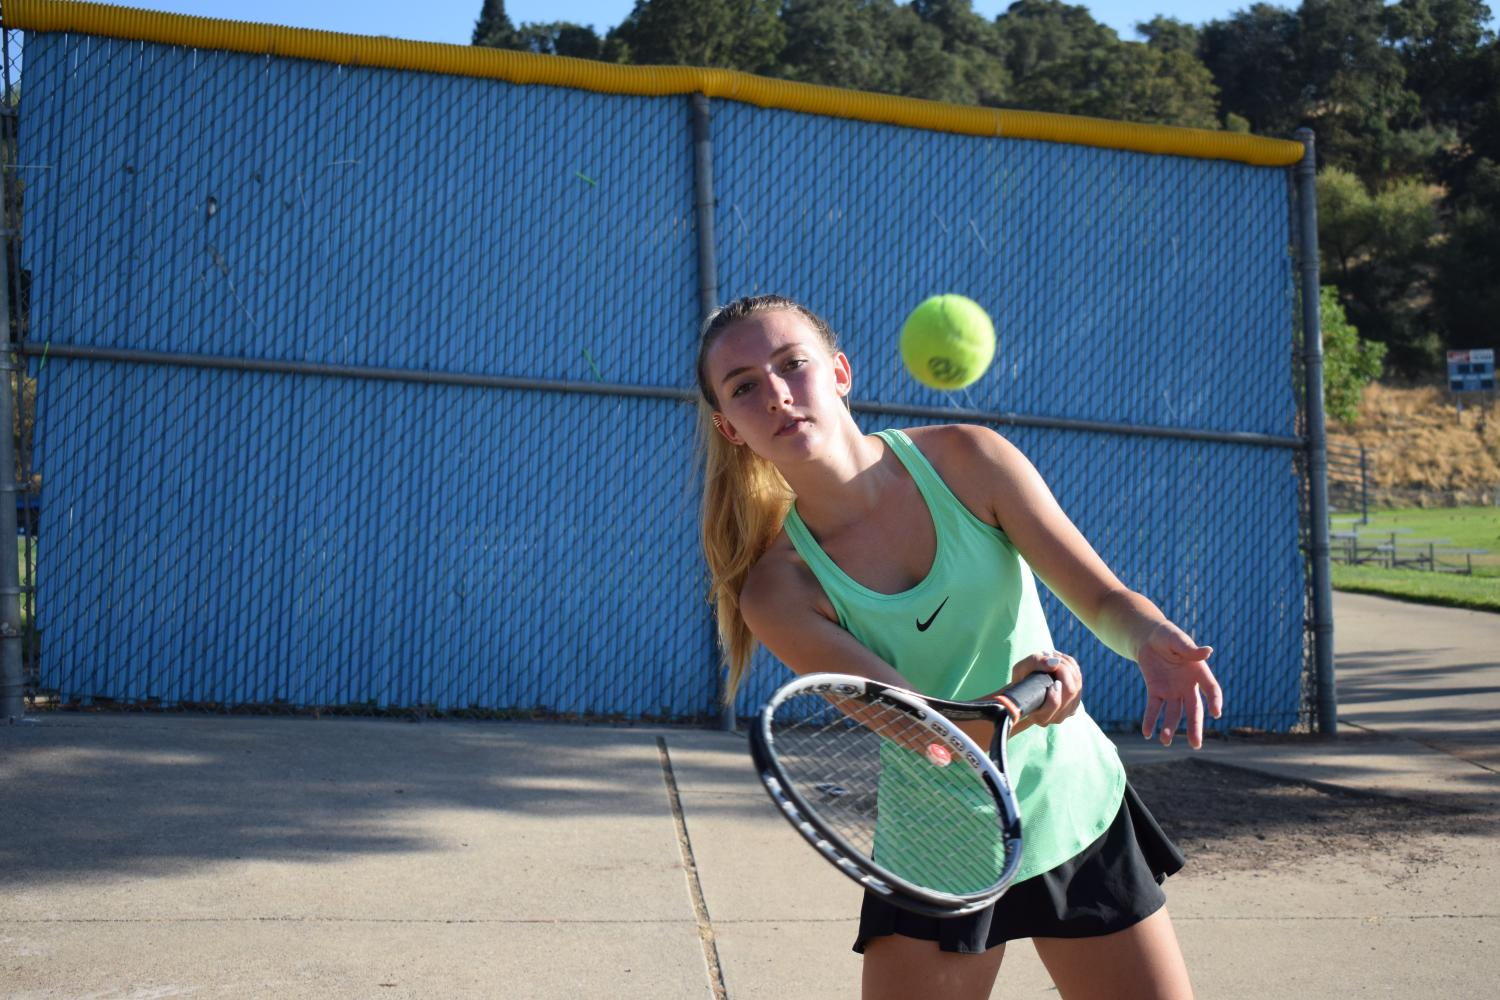 Junior+Claire+Chally+warms+up+in+her+tennis+match.